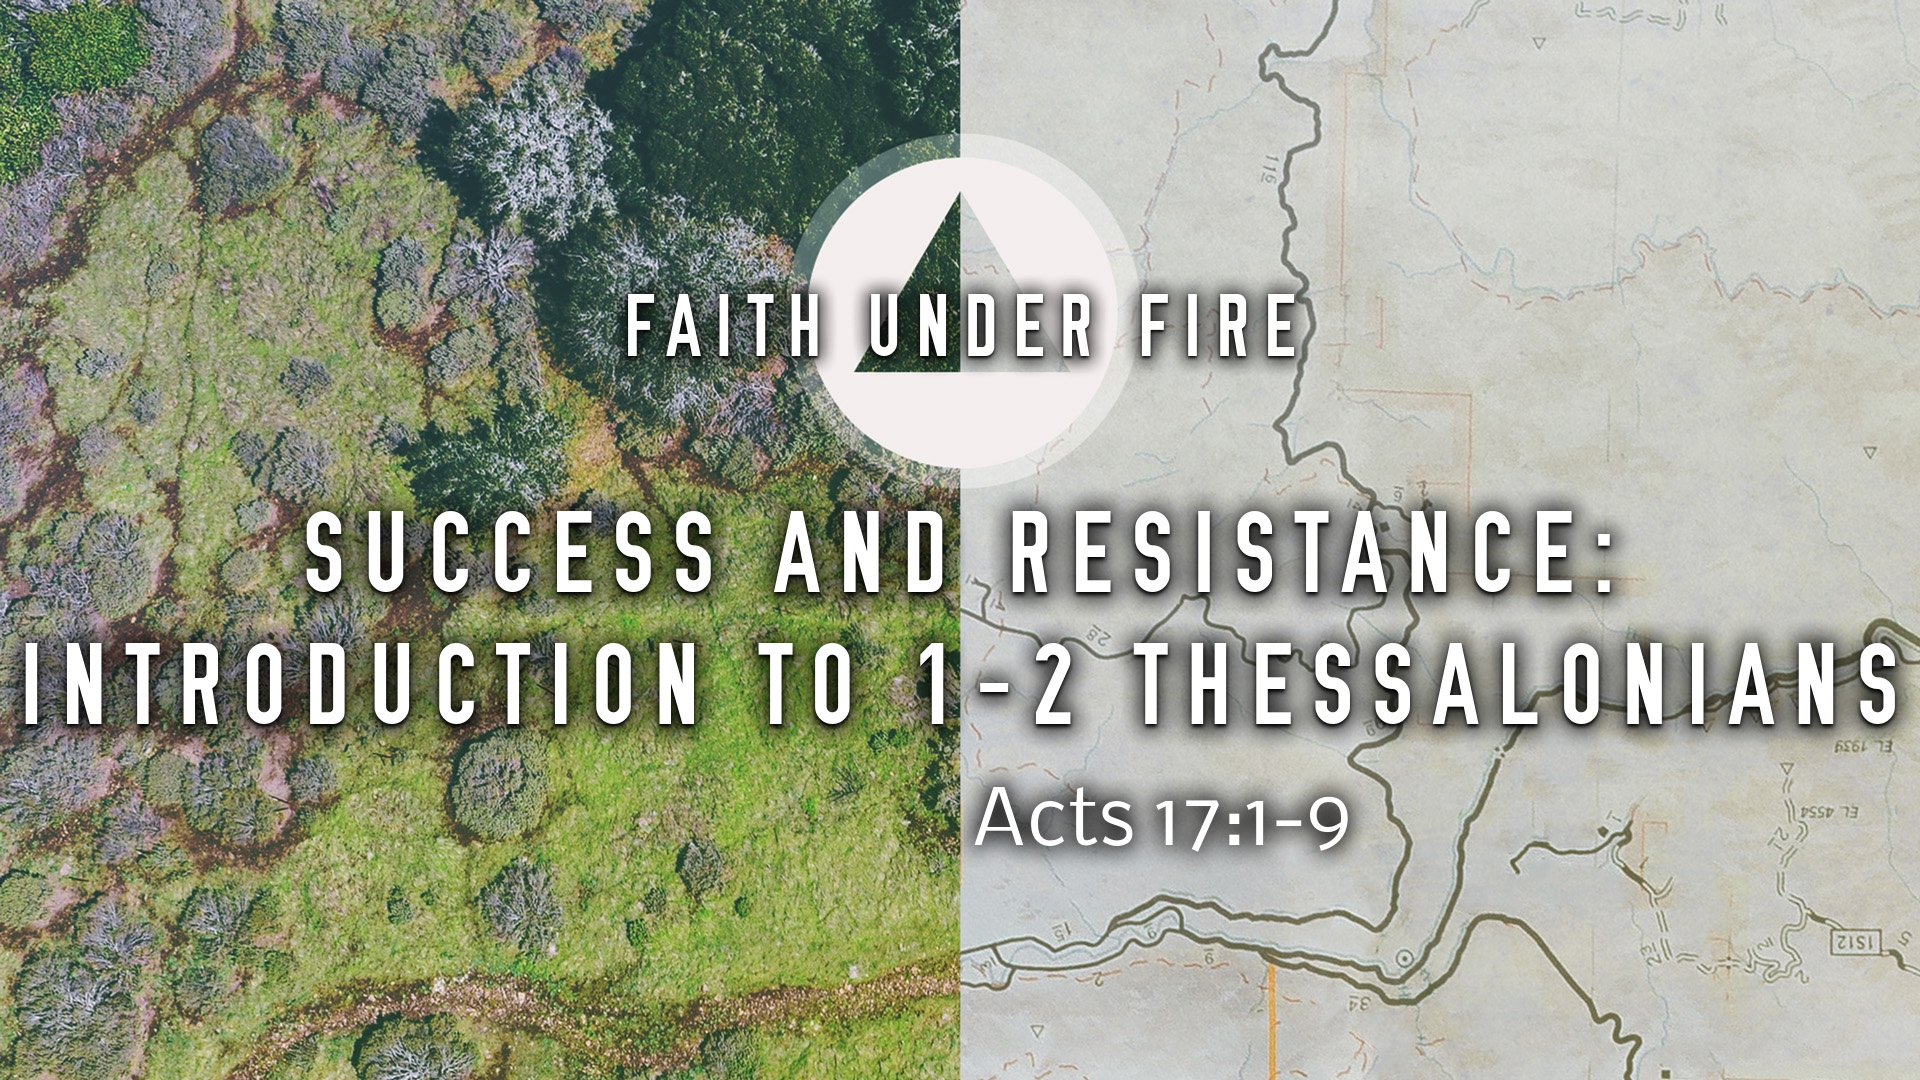 Image for the sermon Success and Resistance: Introduction to 1-2 Thessalonians